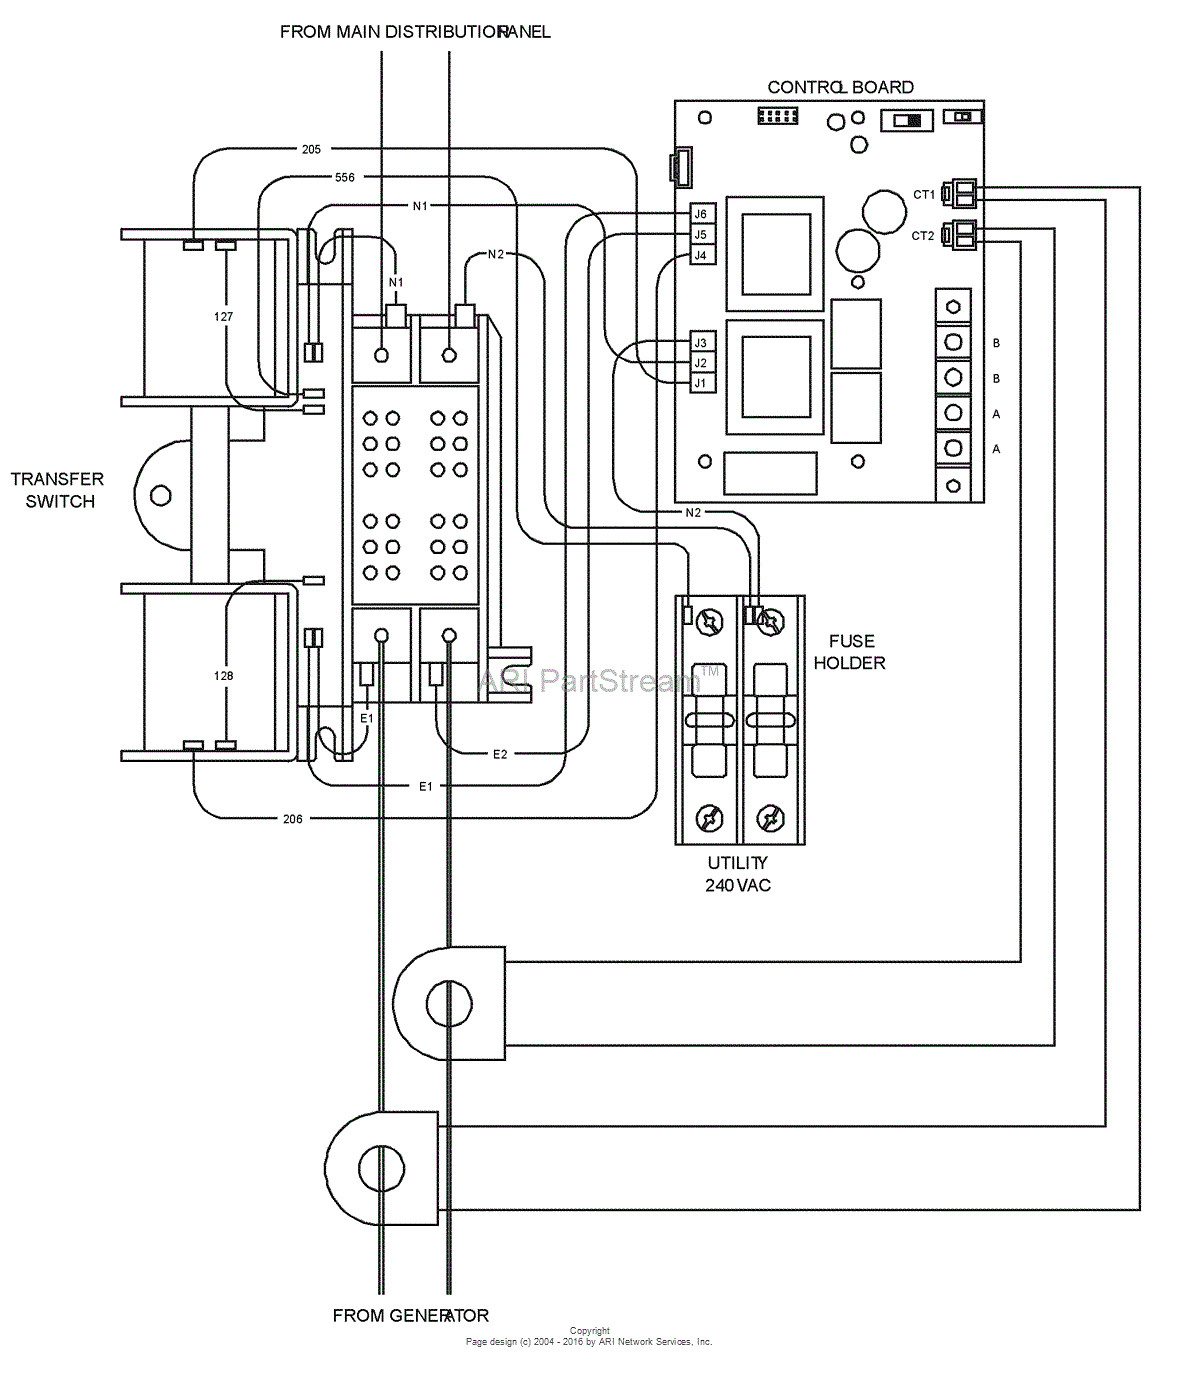 reliance generator transfer switch wiring diagram gallery. Black Bedroom Furniture Sets. Home Design Ideas